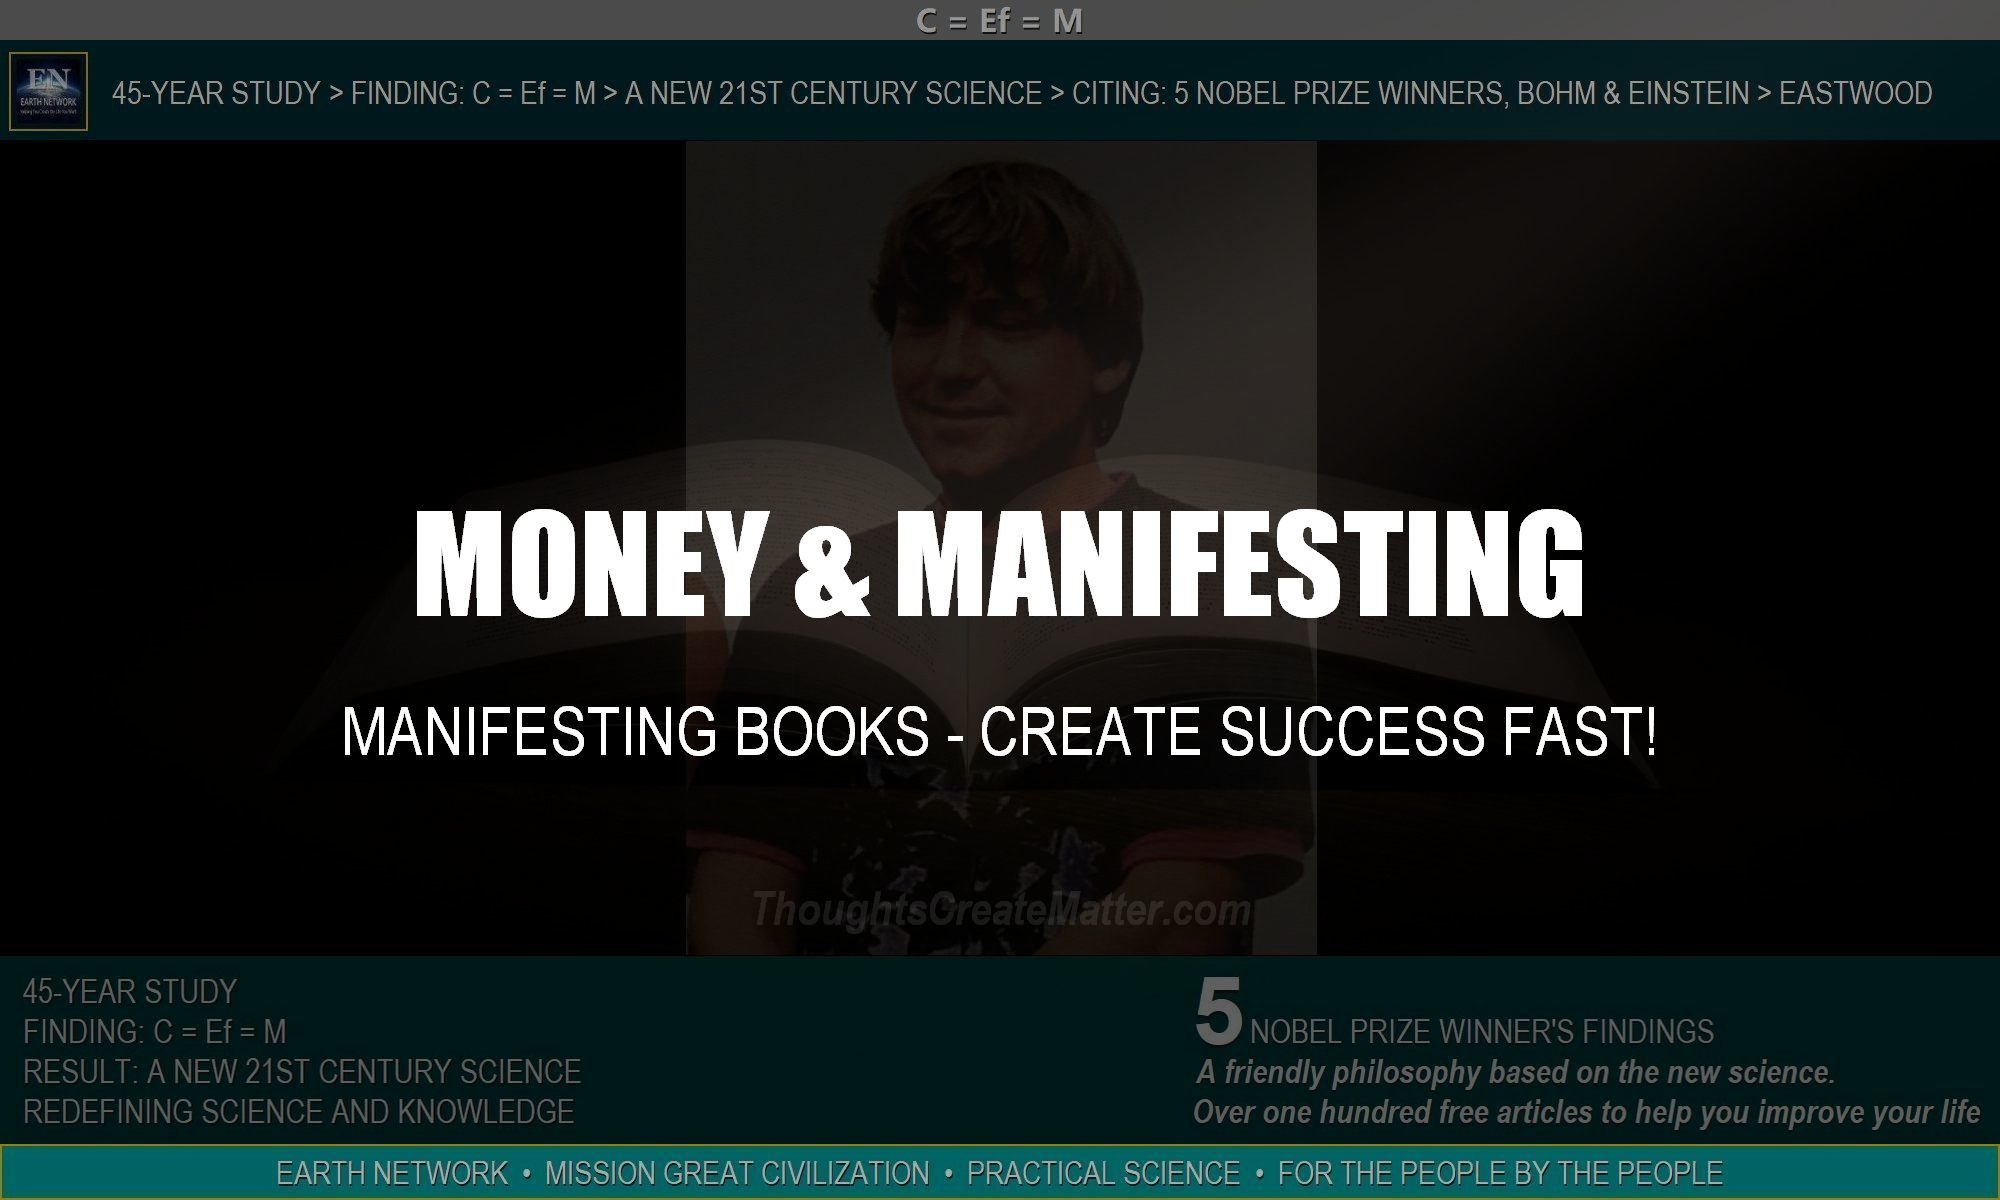 William Eastwood's money manifesting books show you how to create success fast with proven examples.